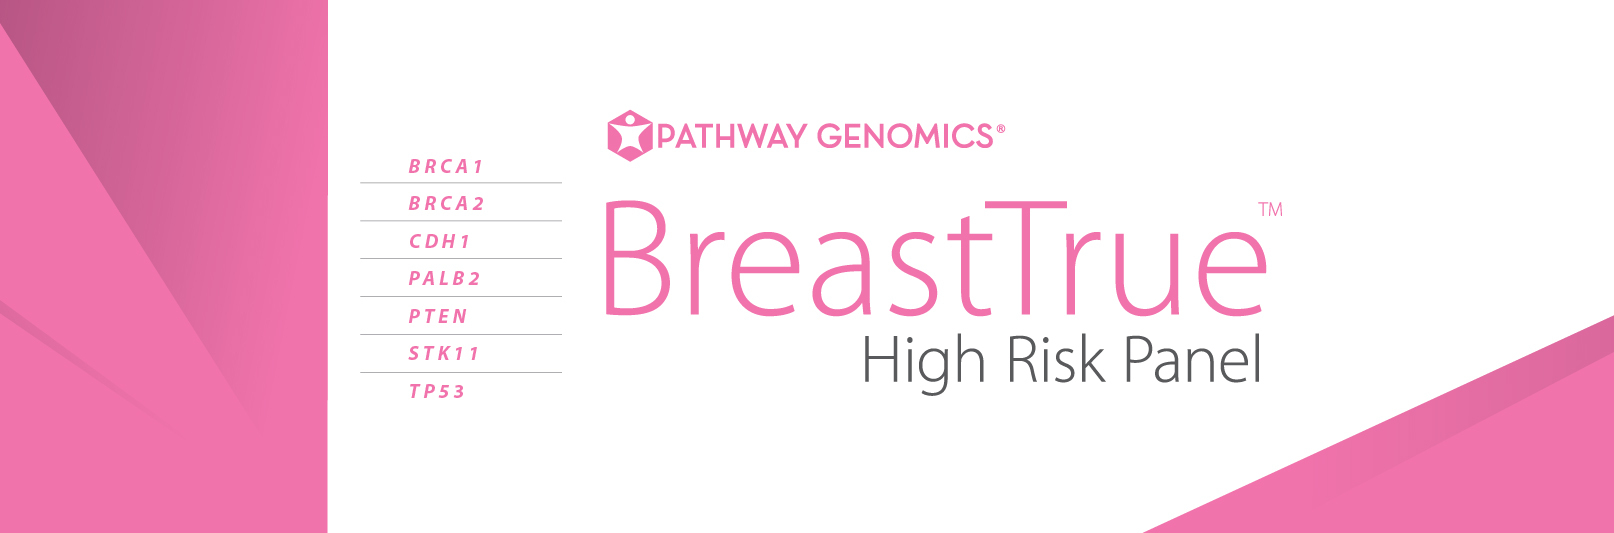 Pathway Genomics Launches BreastTrue NGS High Risk Breast ...